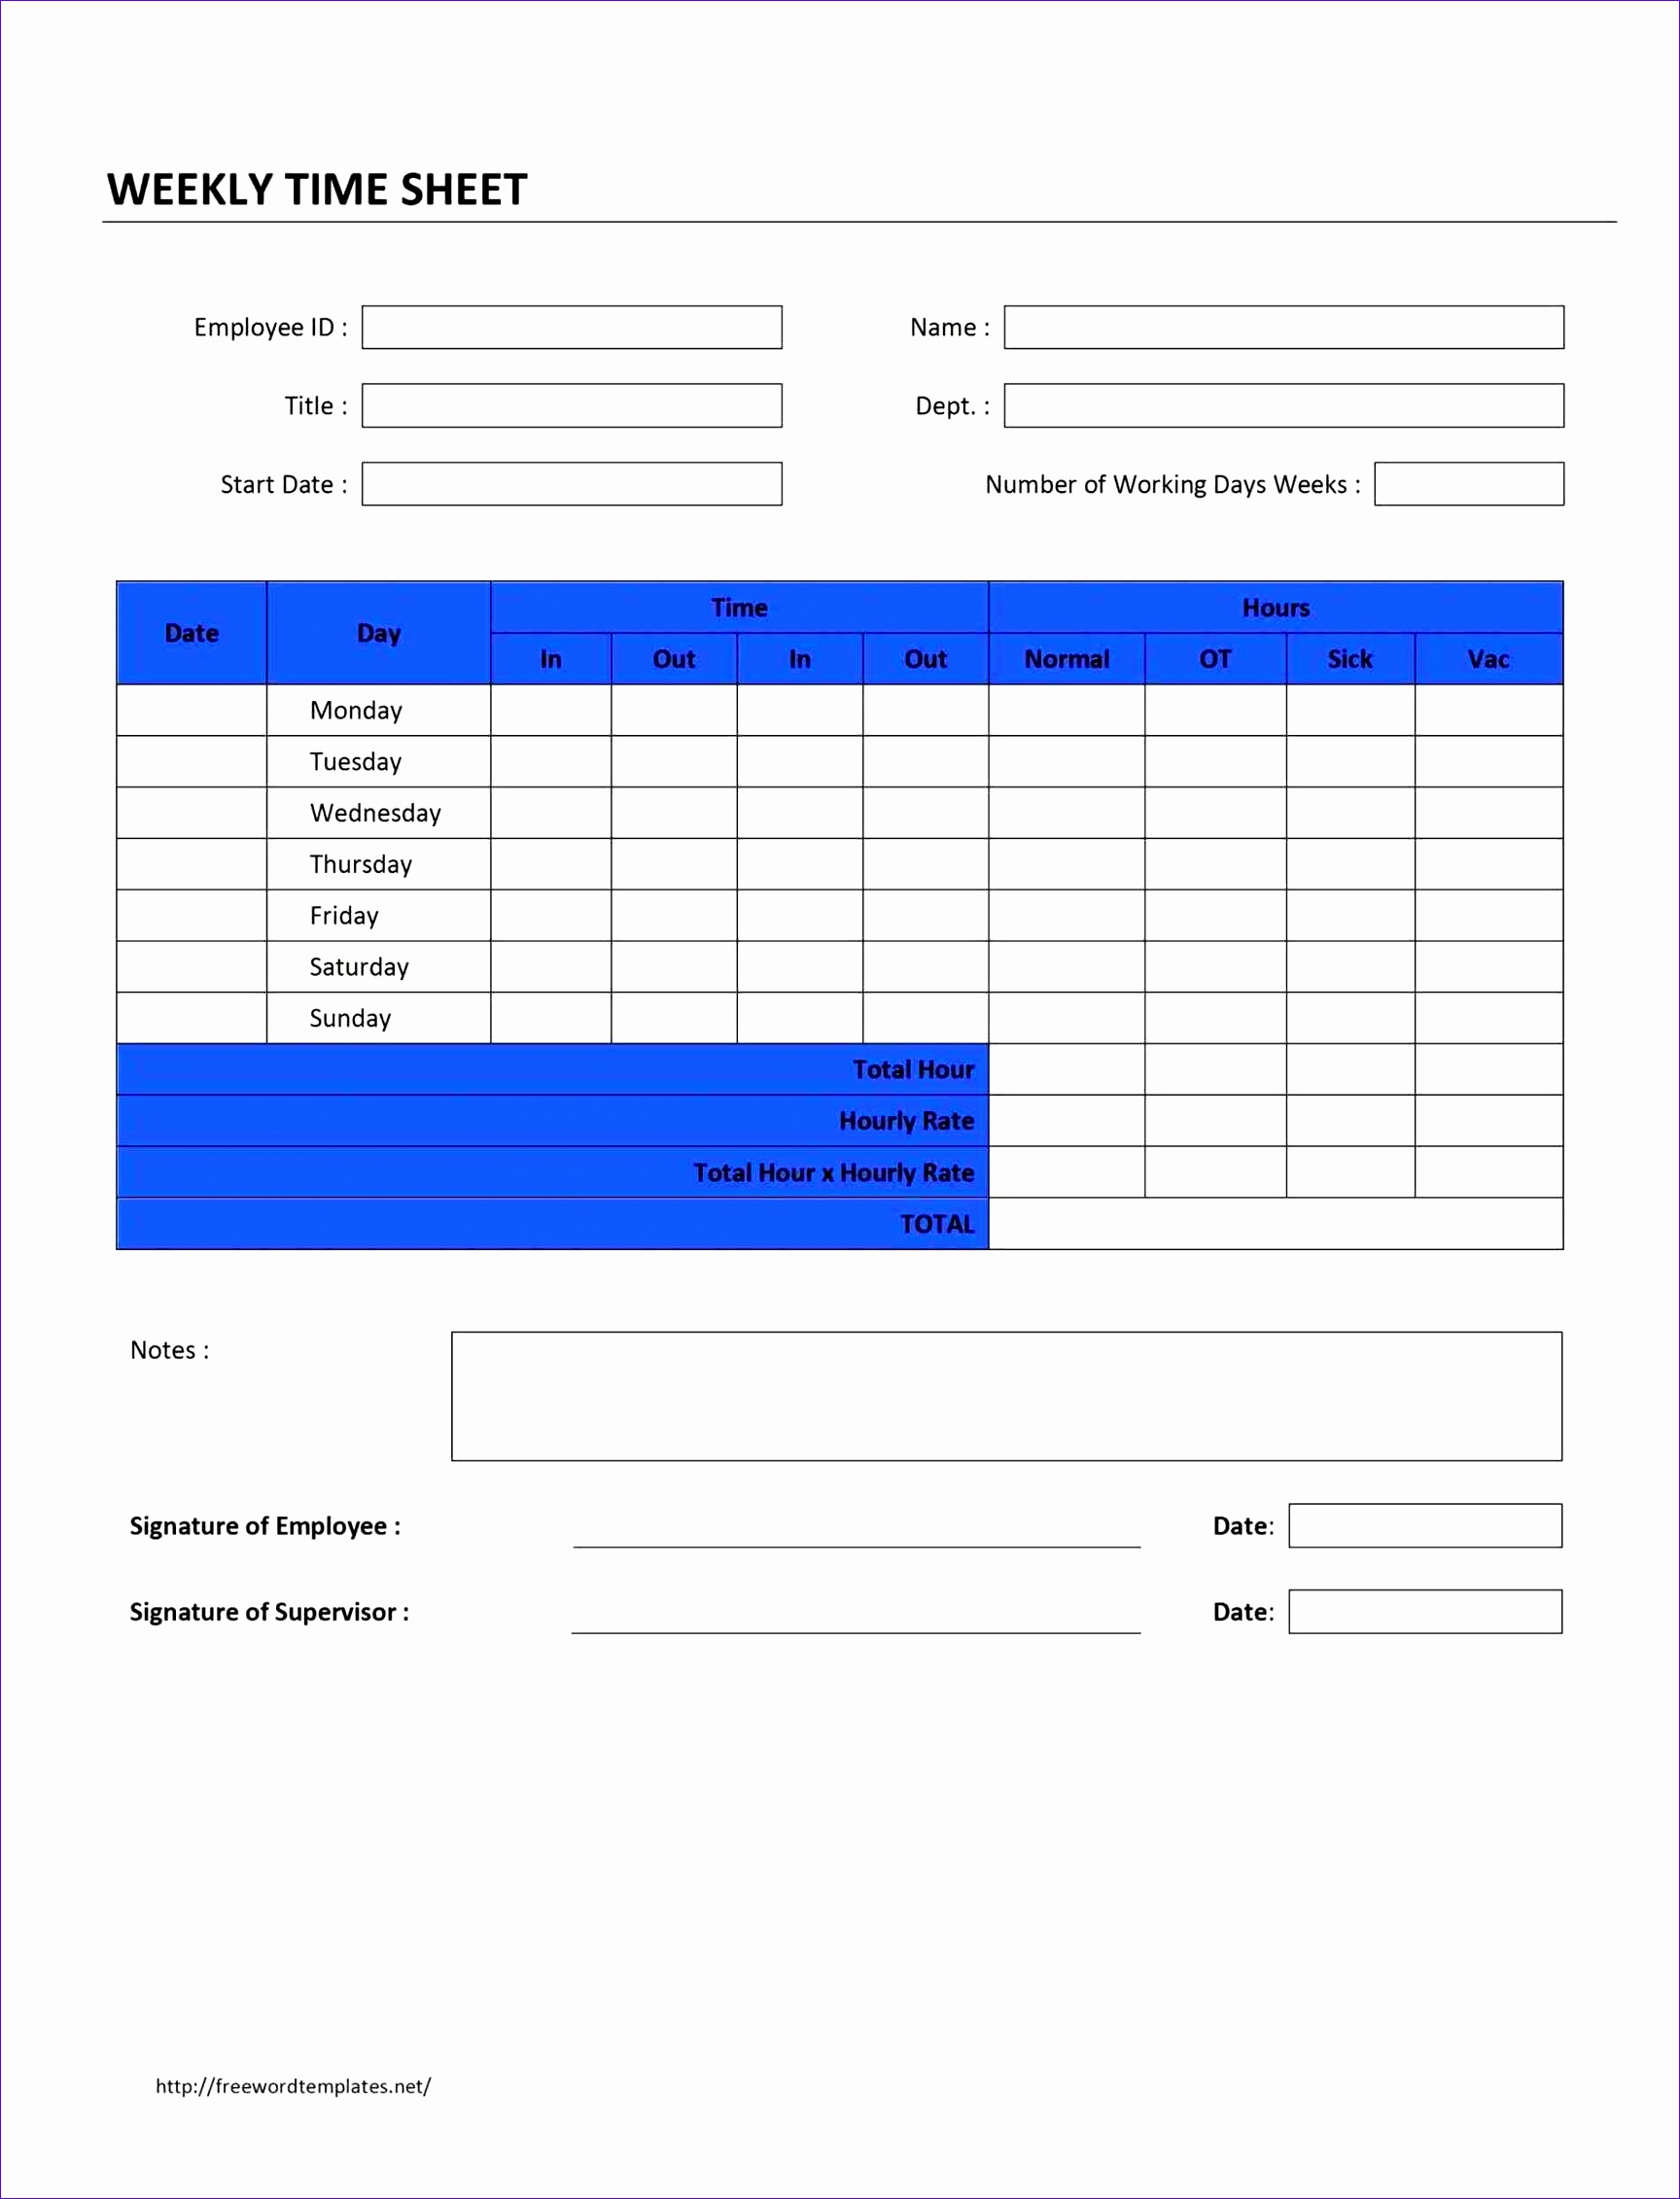 Employee Time Sheet time sheets for employees printable pdf weekly employee timesheet excel scienceresume employee Weekly Employee Time Sheet timesheet excel scienceresume